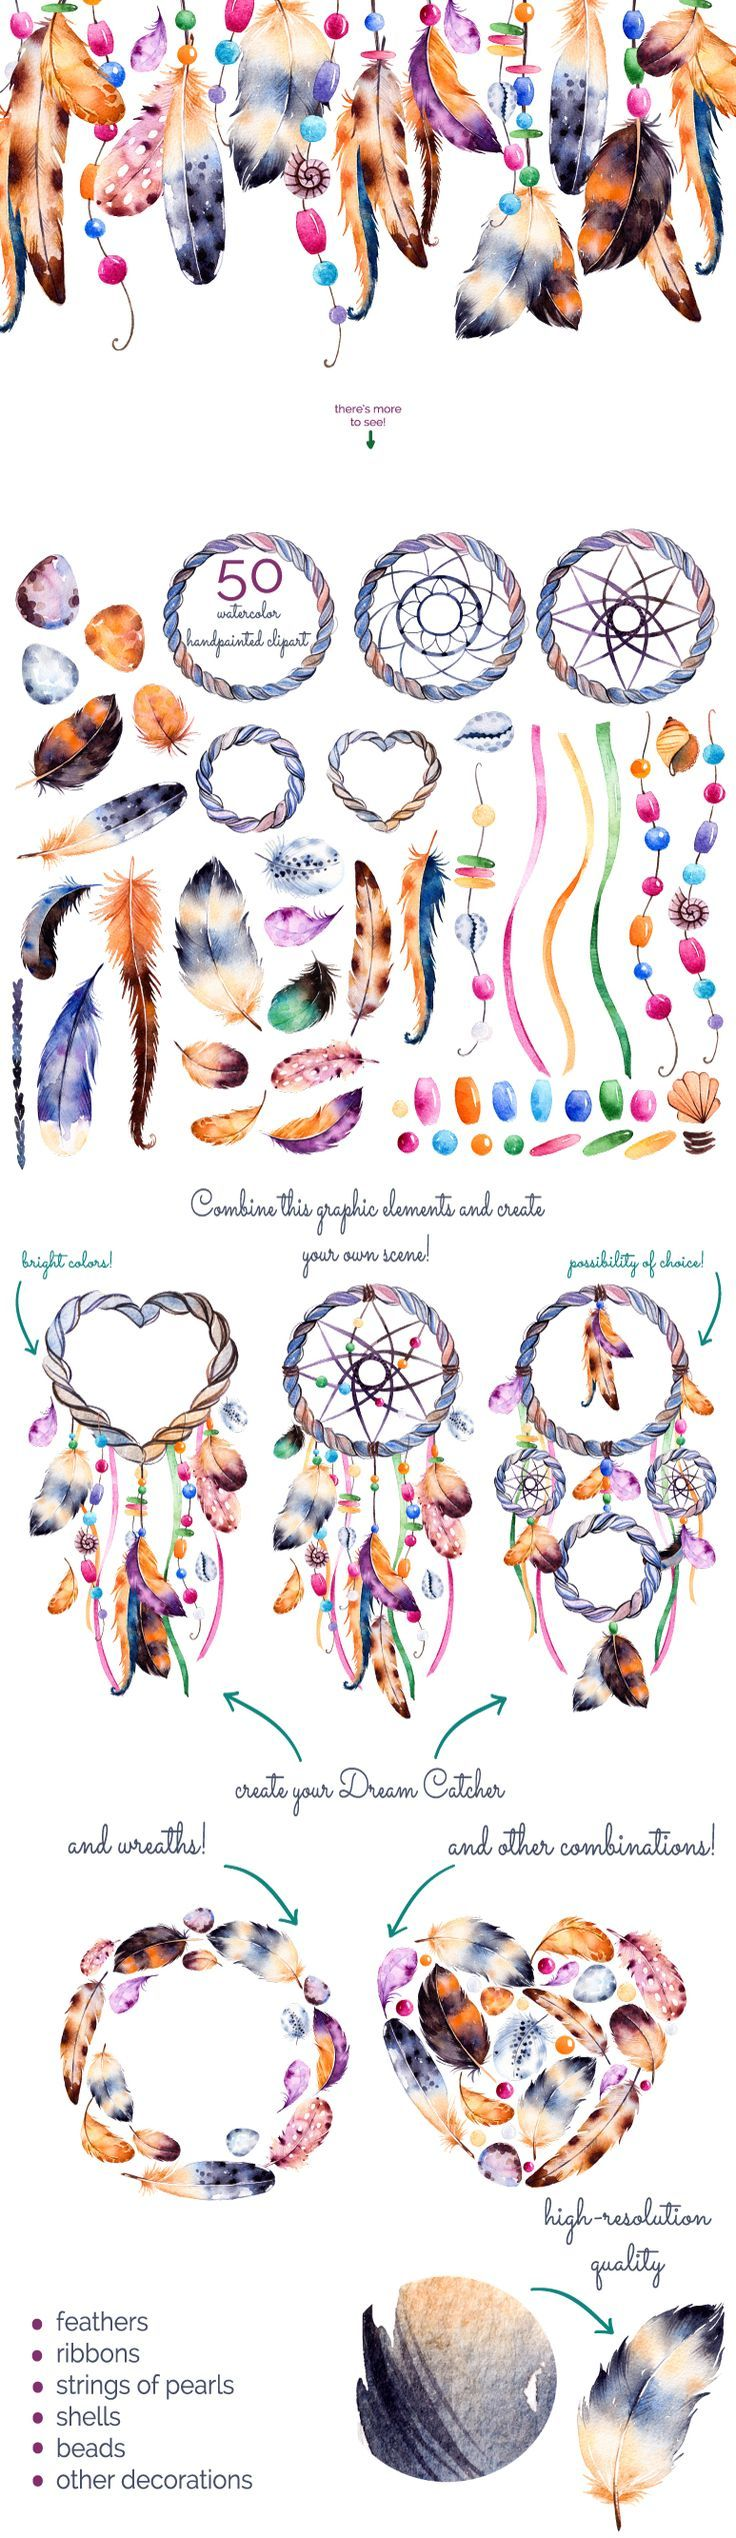 Feathers and dream catchers by Kate_Rina on /creativemarket/